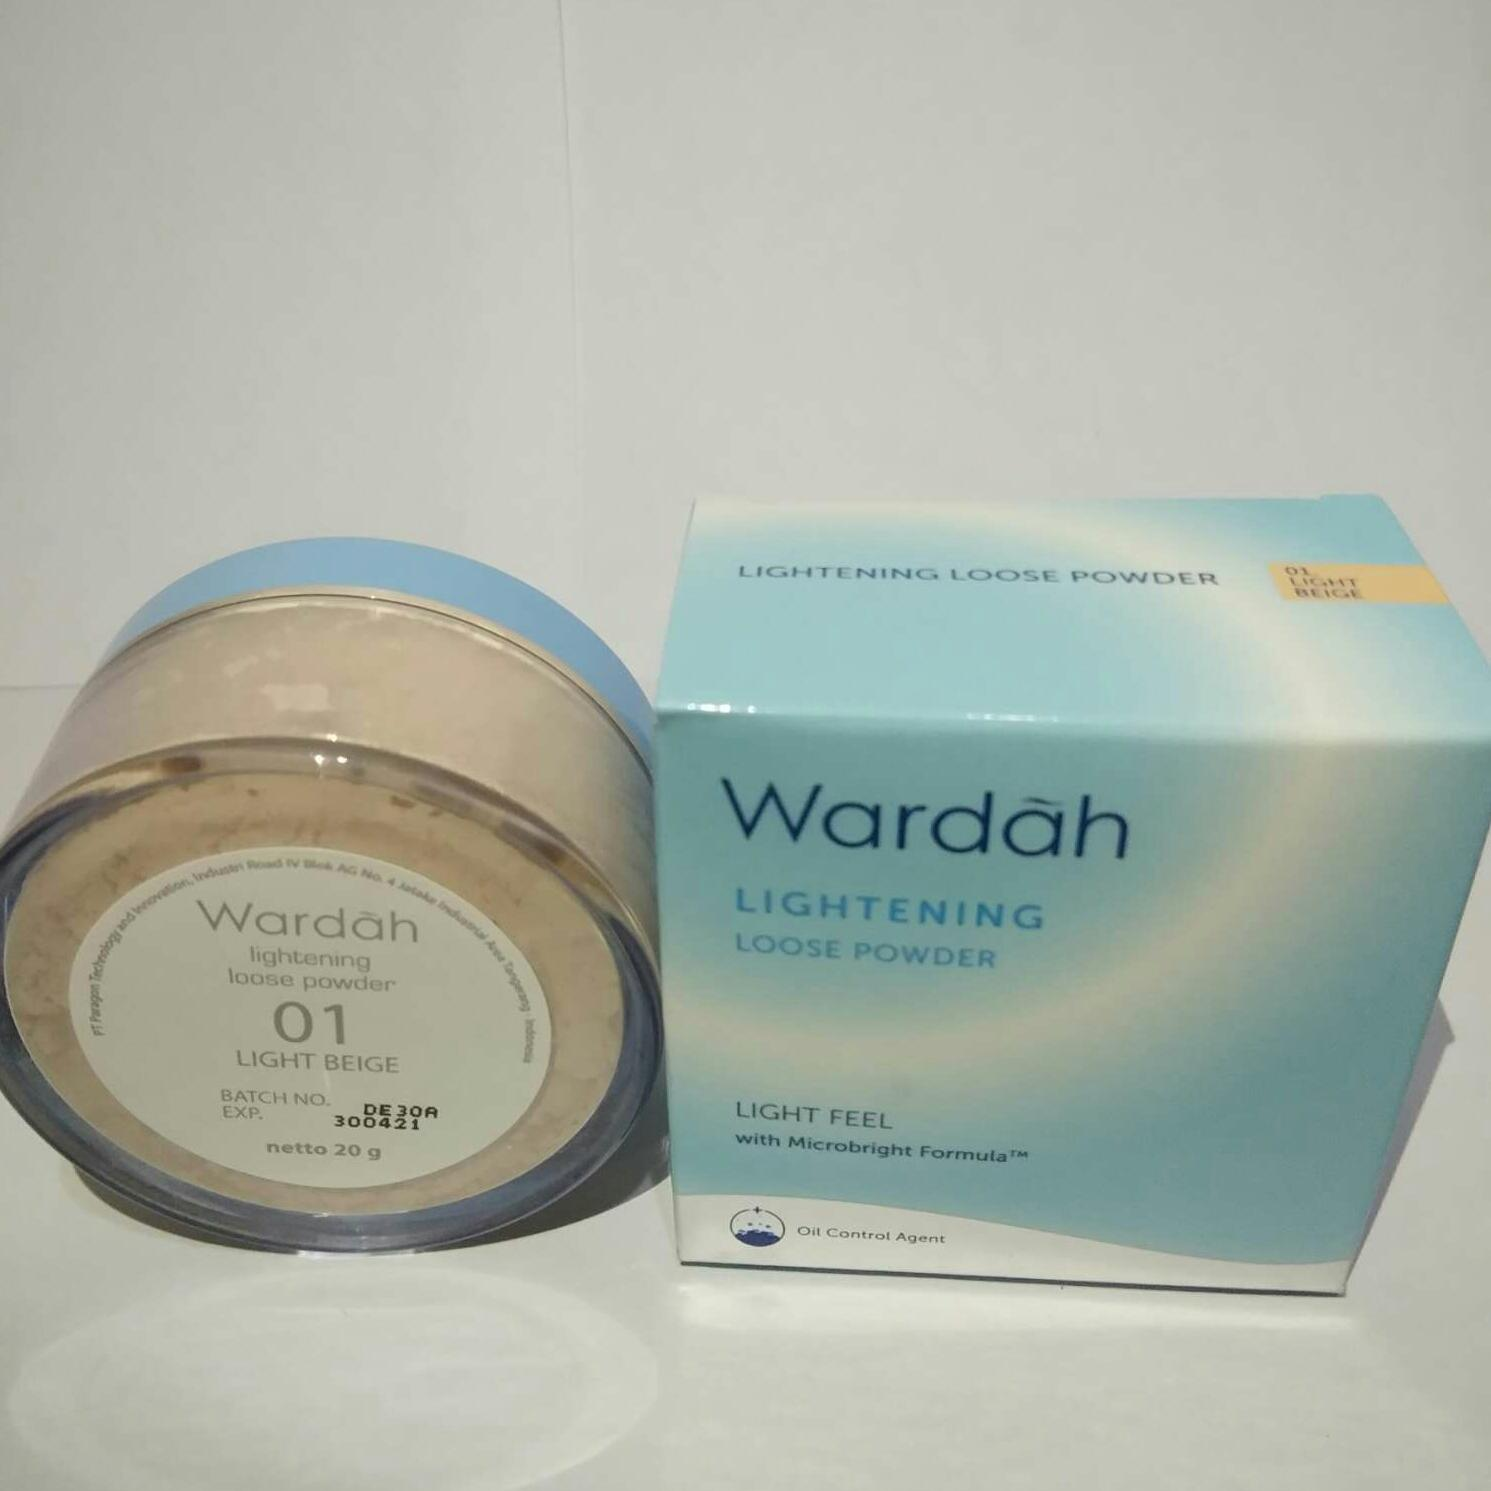 Wardah Lightening Loose Powder